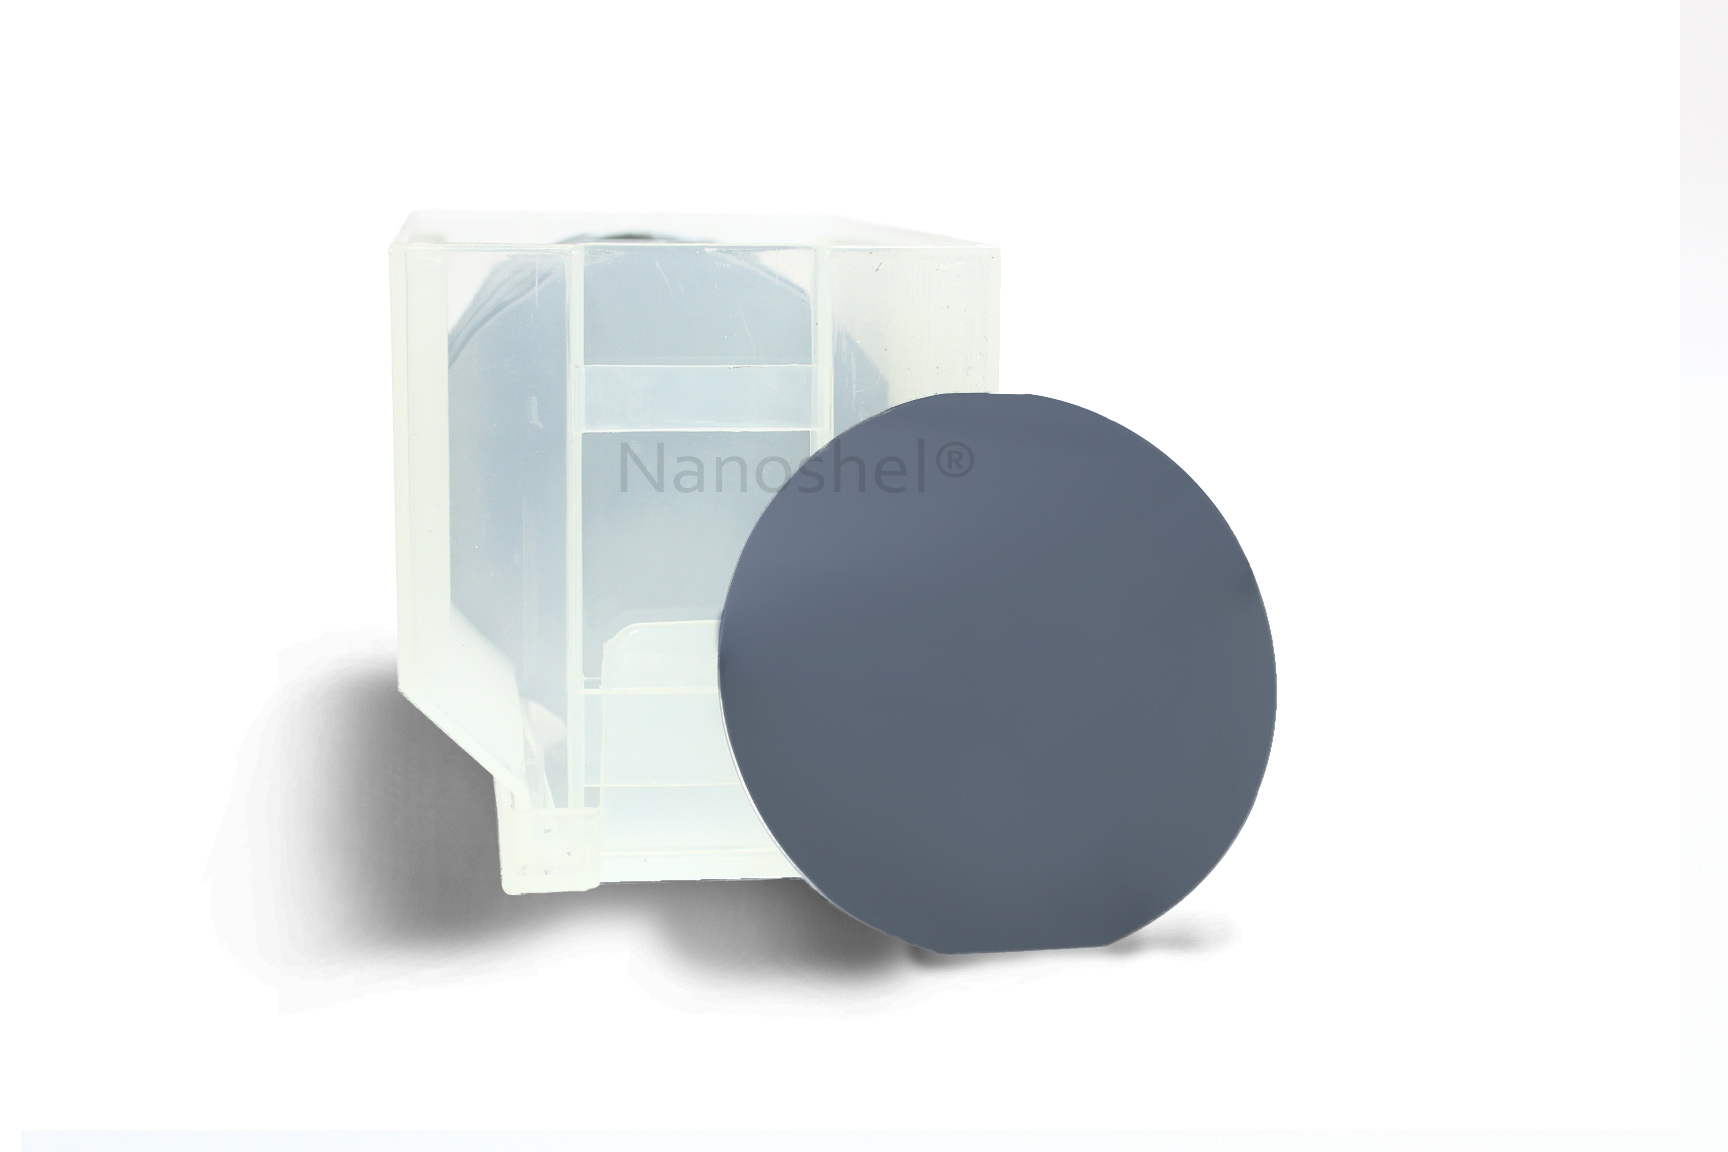 Platinum Coated Silicon Wafer